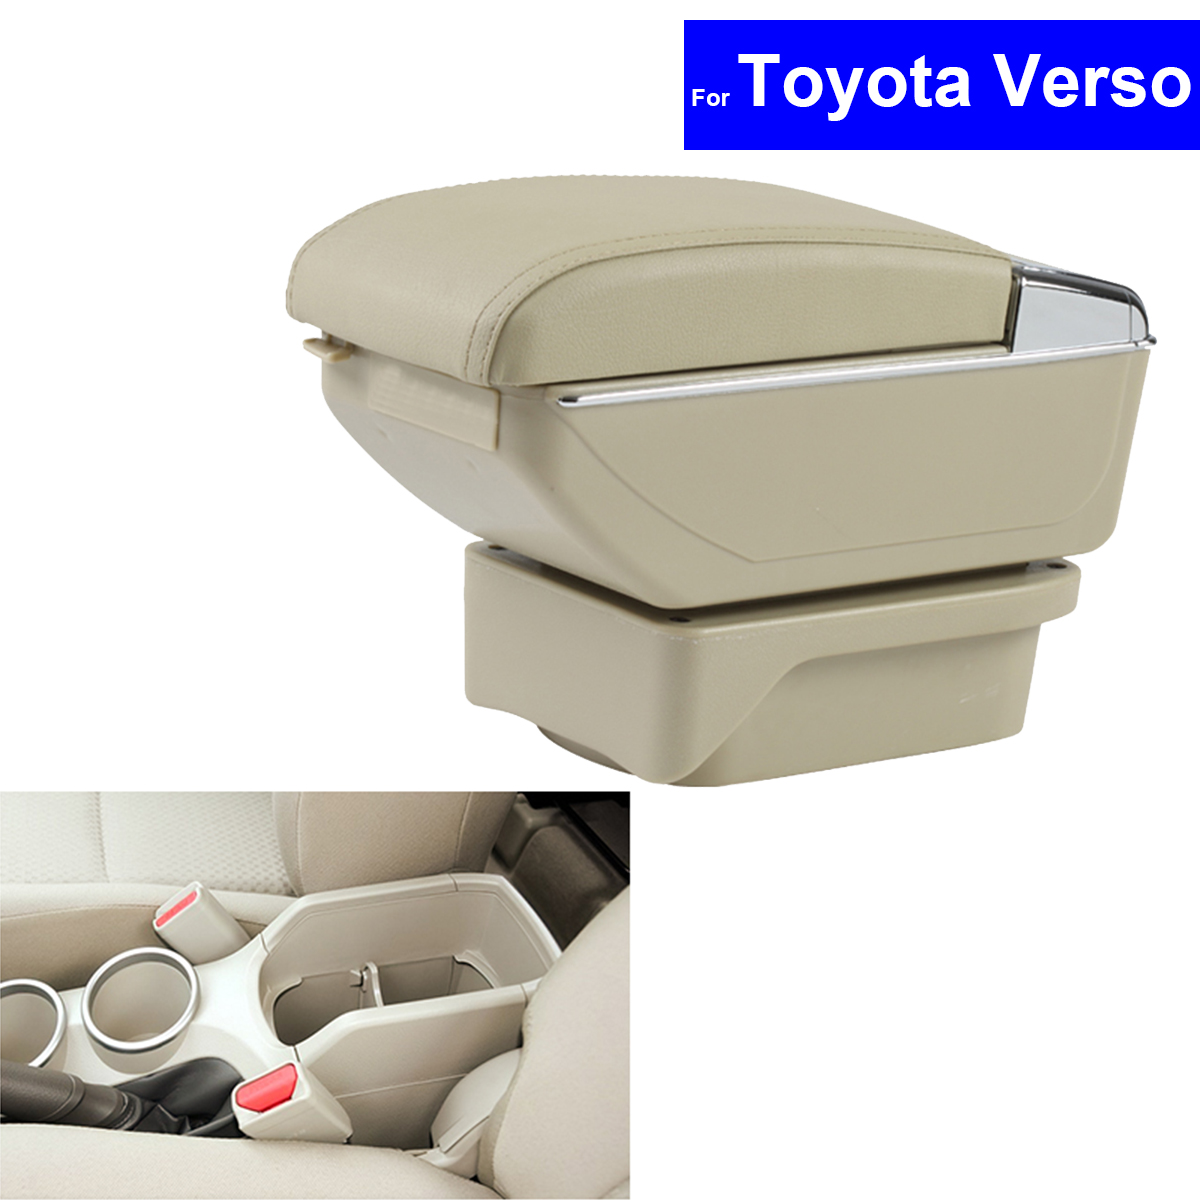 Leather Center Console Armrest Storage Box for Toyota Verso 2011 2012 2013 2014 2015 Armrests Free Shipping car styling 1pcs center console armrest storage box elbow supporting armrest for nissan qashqai sunny tiida livina